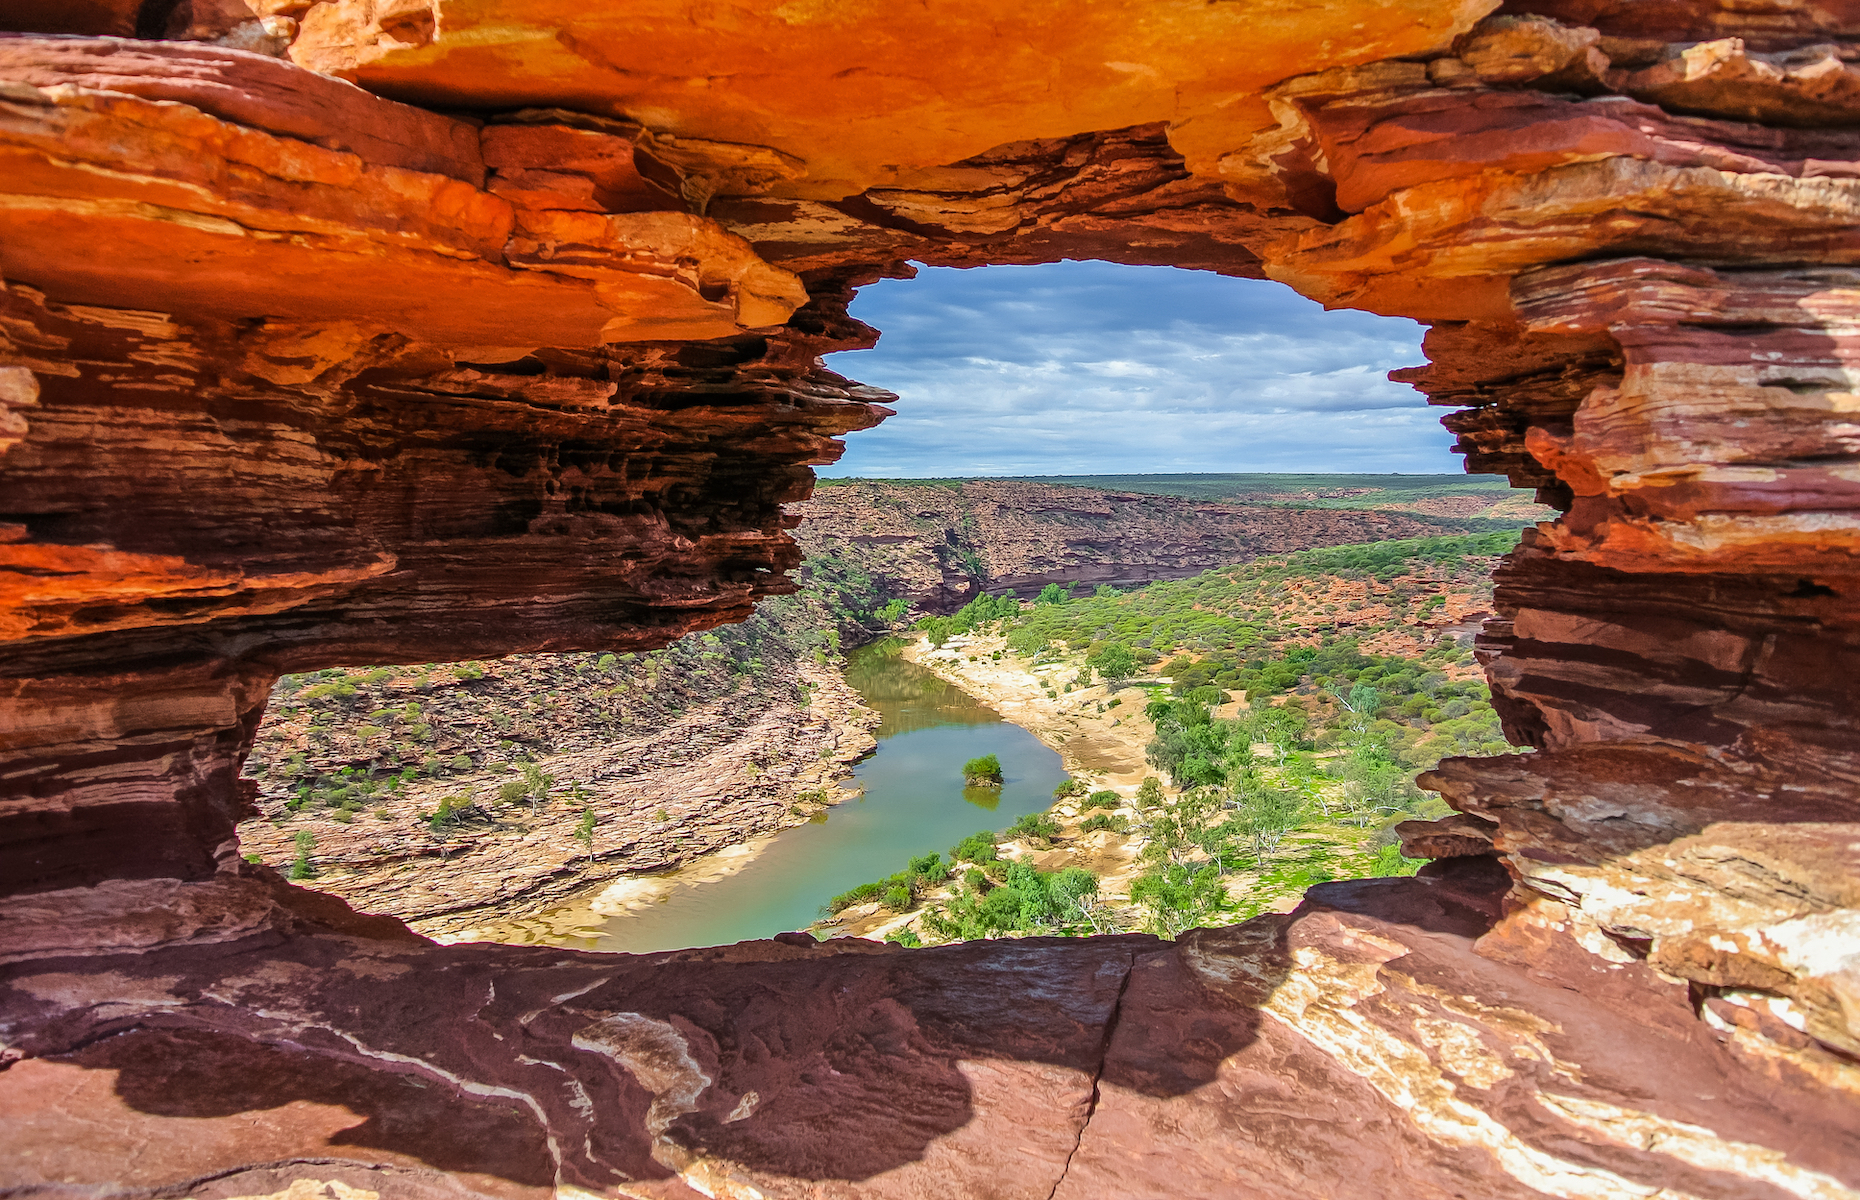 Slide 4 of 21: The Murchison River, second-longest river in Western Australia, flows past sandstone cliffs and straight out to the Indian Ocean. Peek through Nature's Window, formed from layers of Tumblagooda Sandstone, to see the beautiful coastal gorges of Kalbarri National Park.